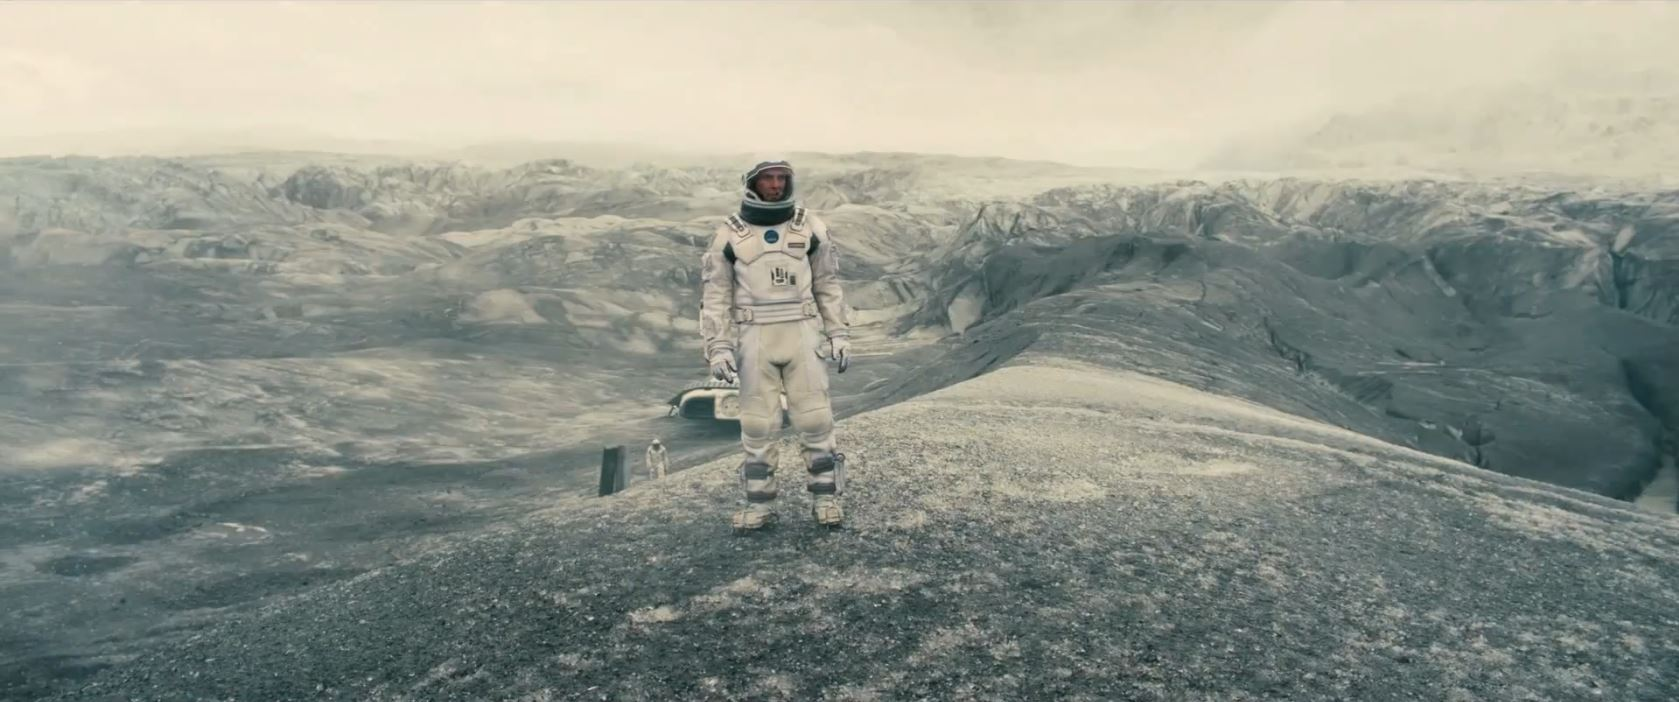 Interstellar trailer - ash planet